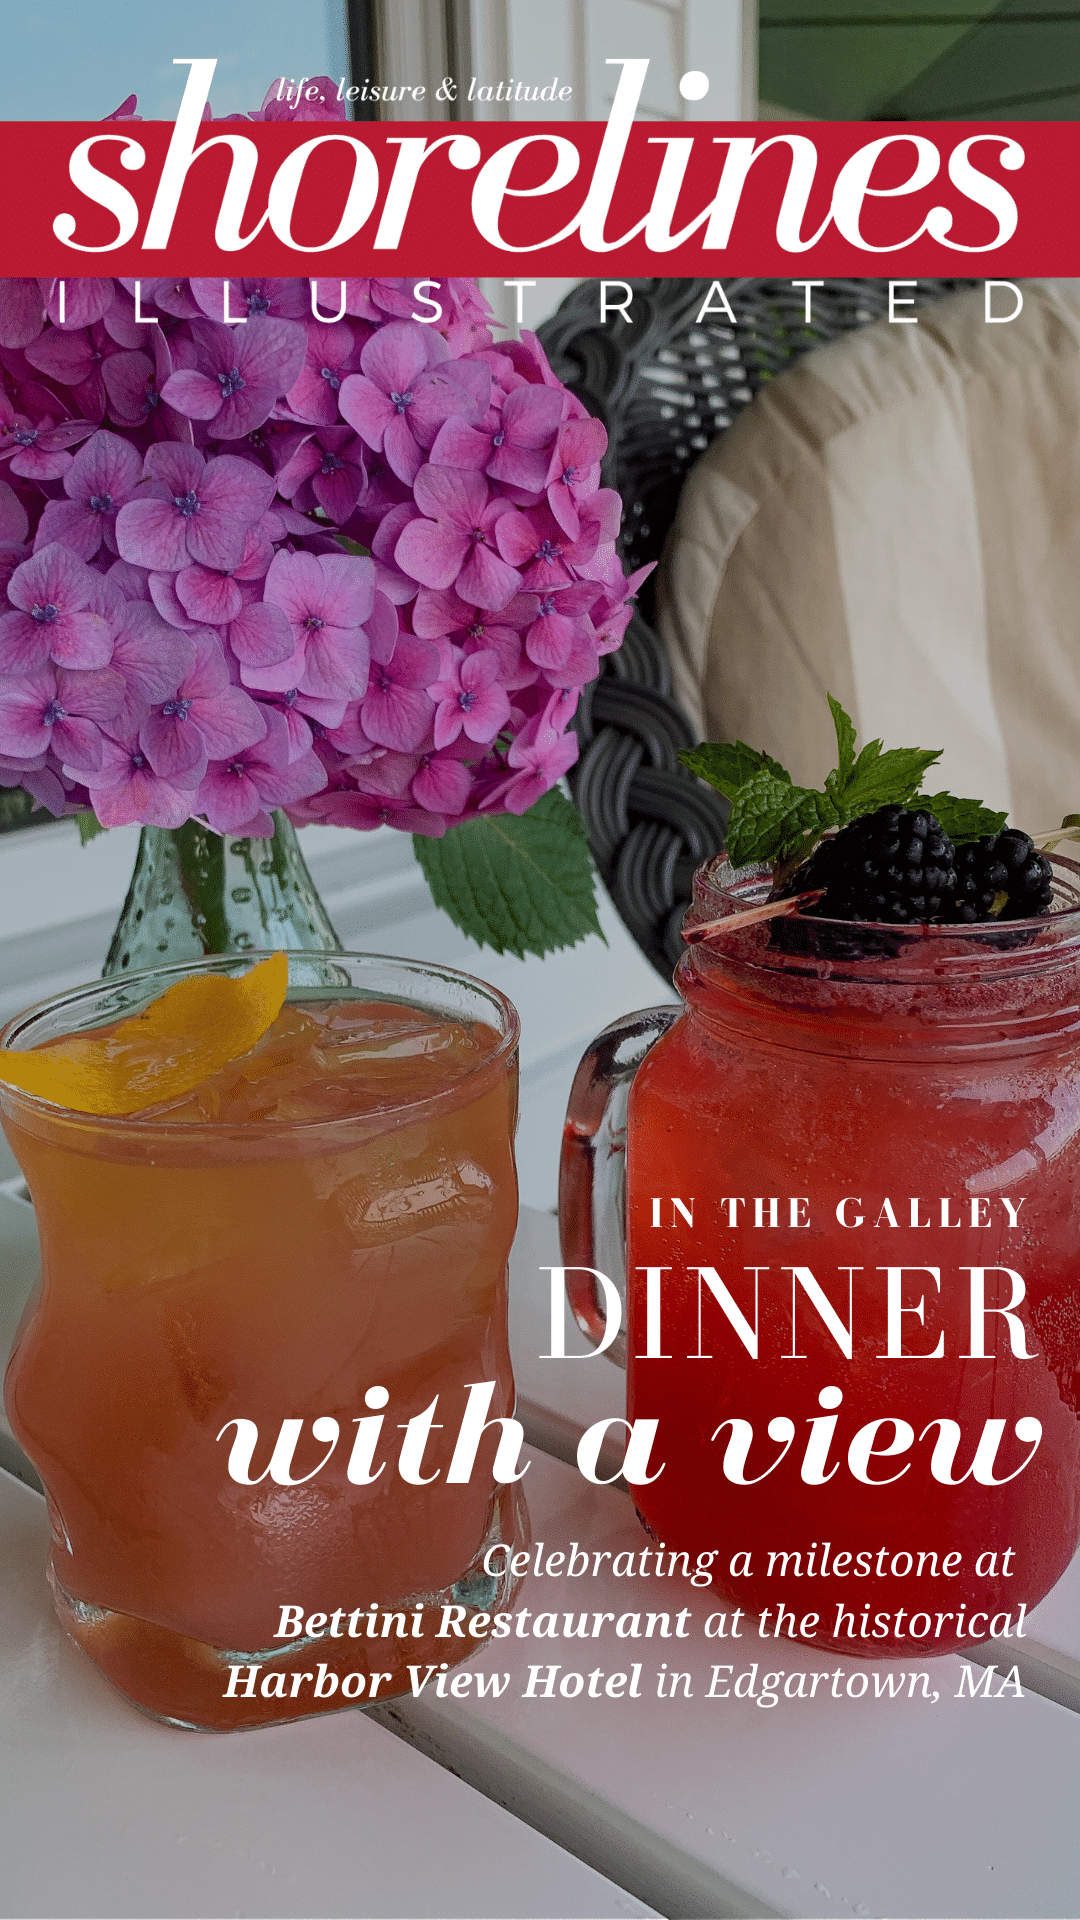 Celebrating a very special occasion at Bettini Restaurant at the Harbor View Hotel in Edgartown Marthas Vineyard